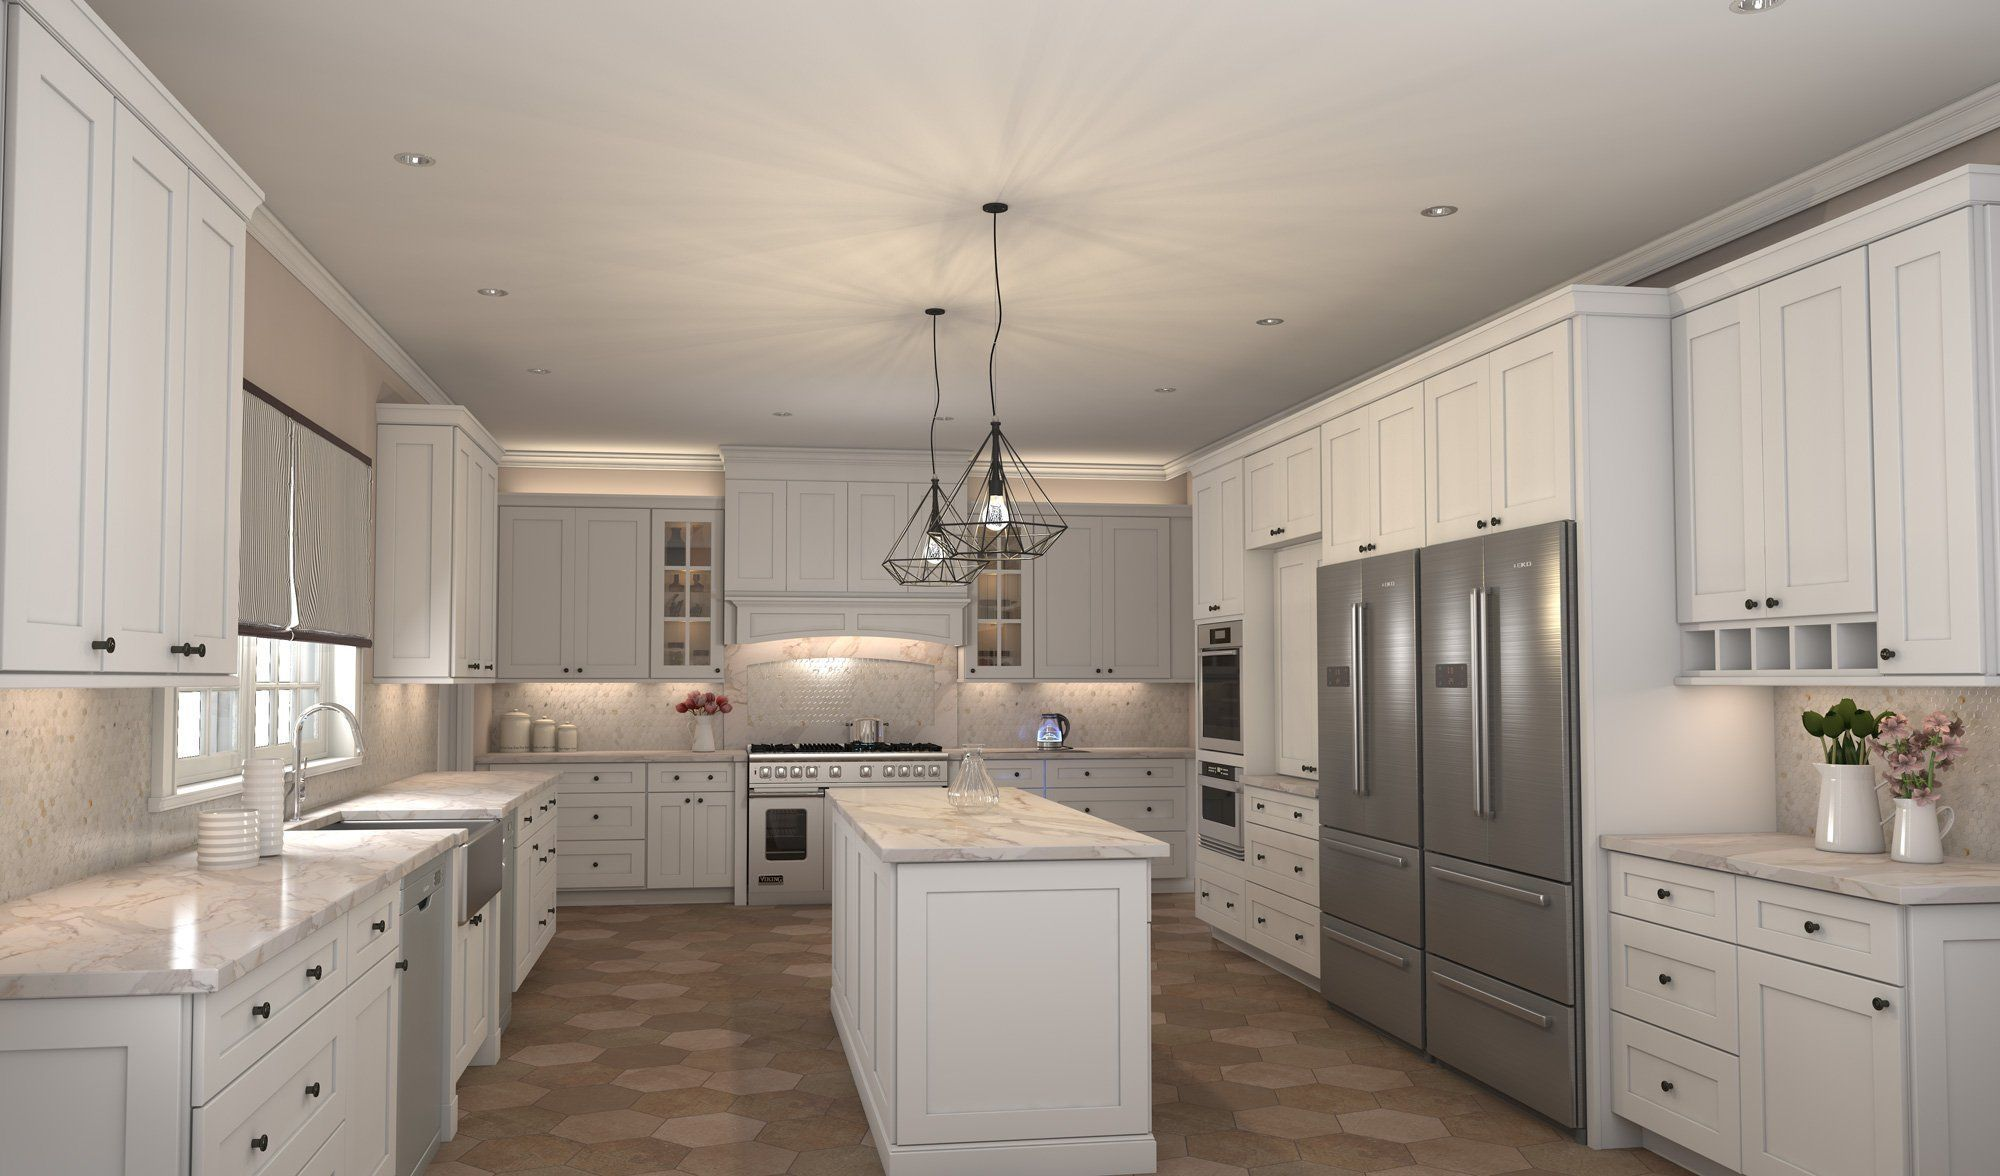 The Transitional Style Of Dover Latte Shaker Style Cabinets By Cubitaccabinetry Brings B Discount Kitchen Cabinets Buy Kitchen Cabinets Kitchen Cabinet Styles